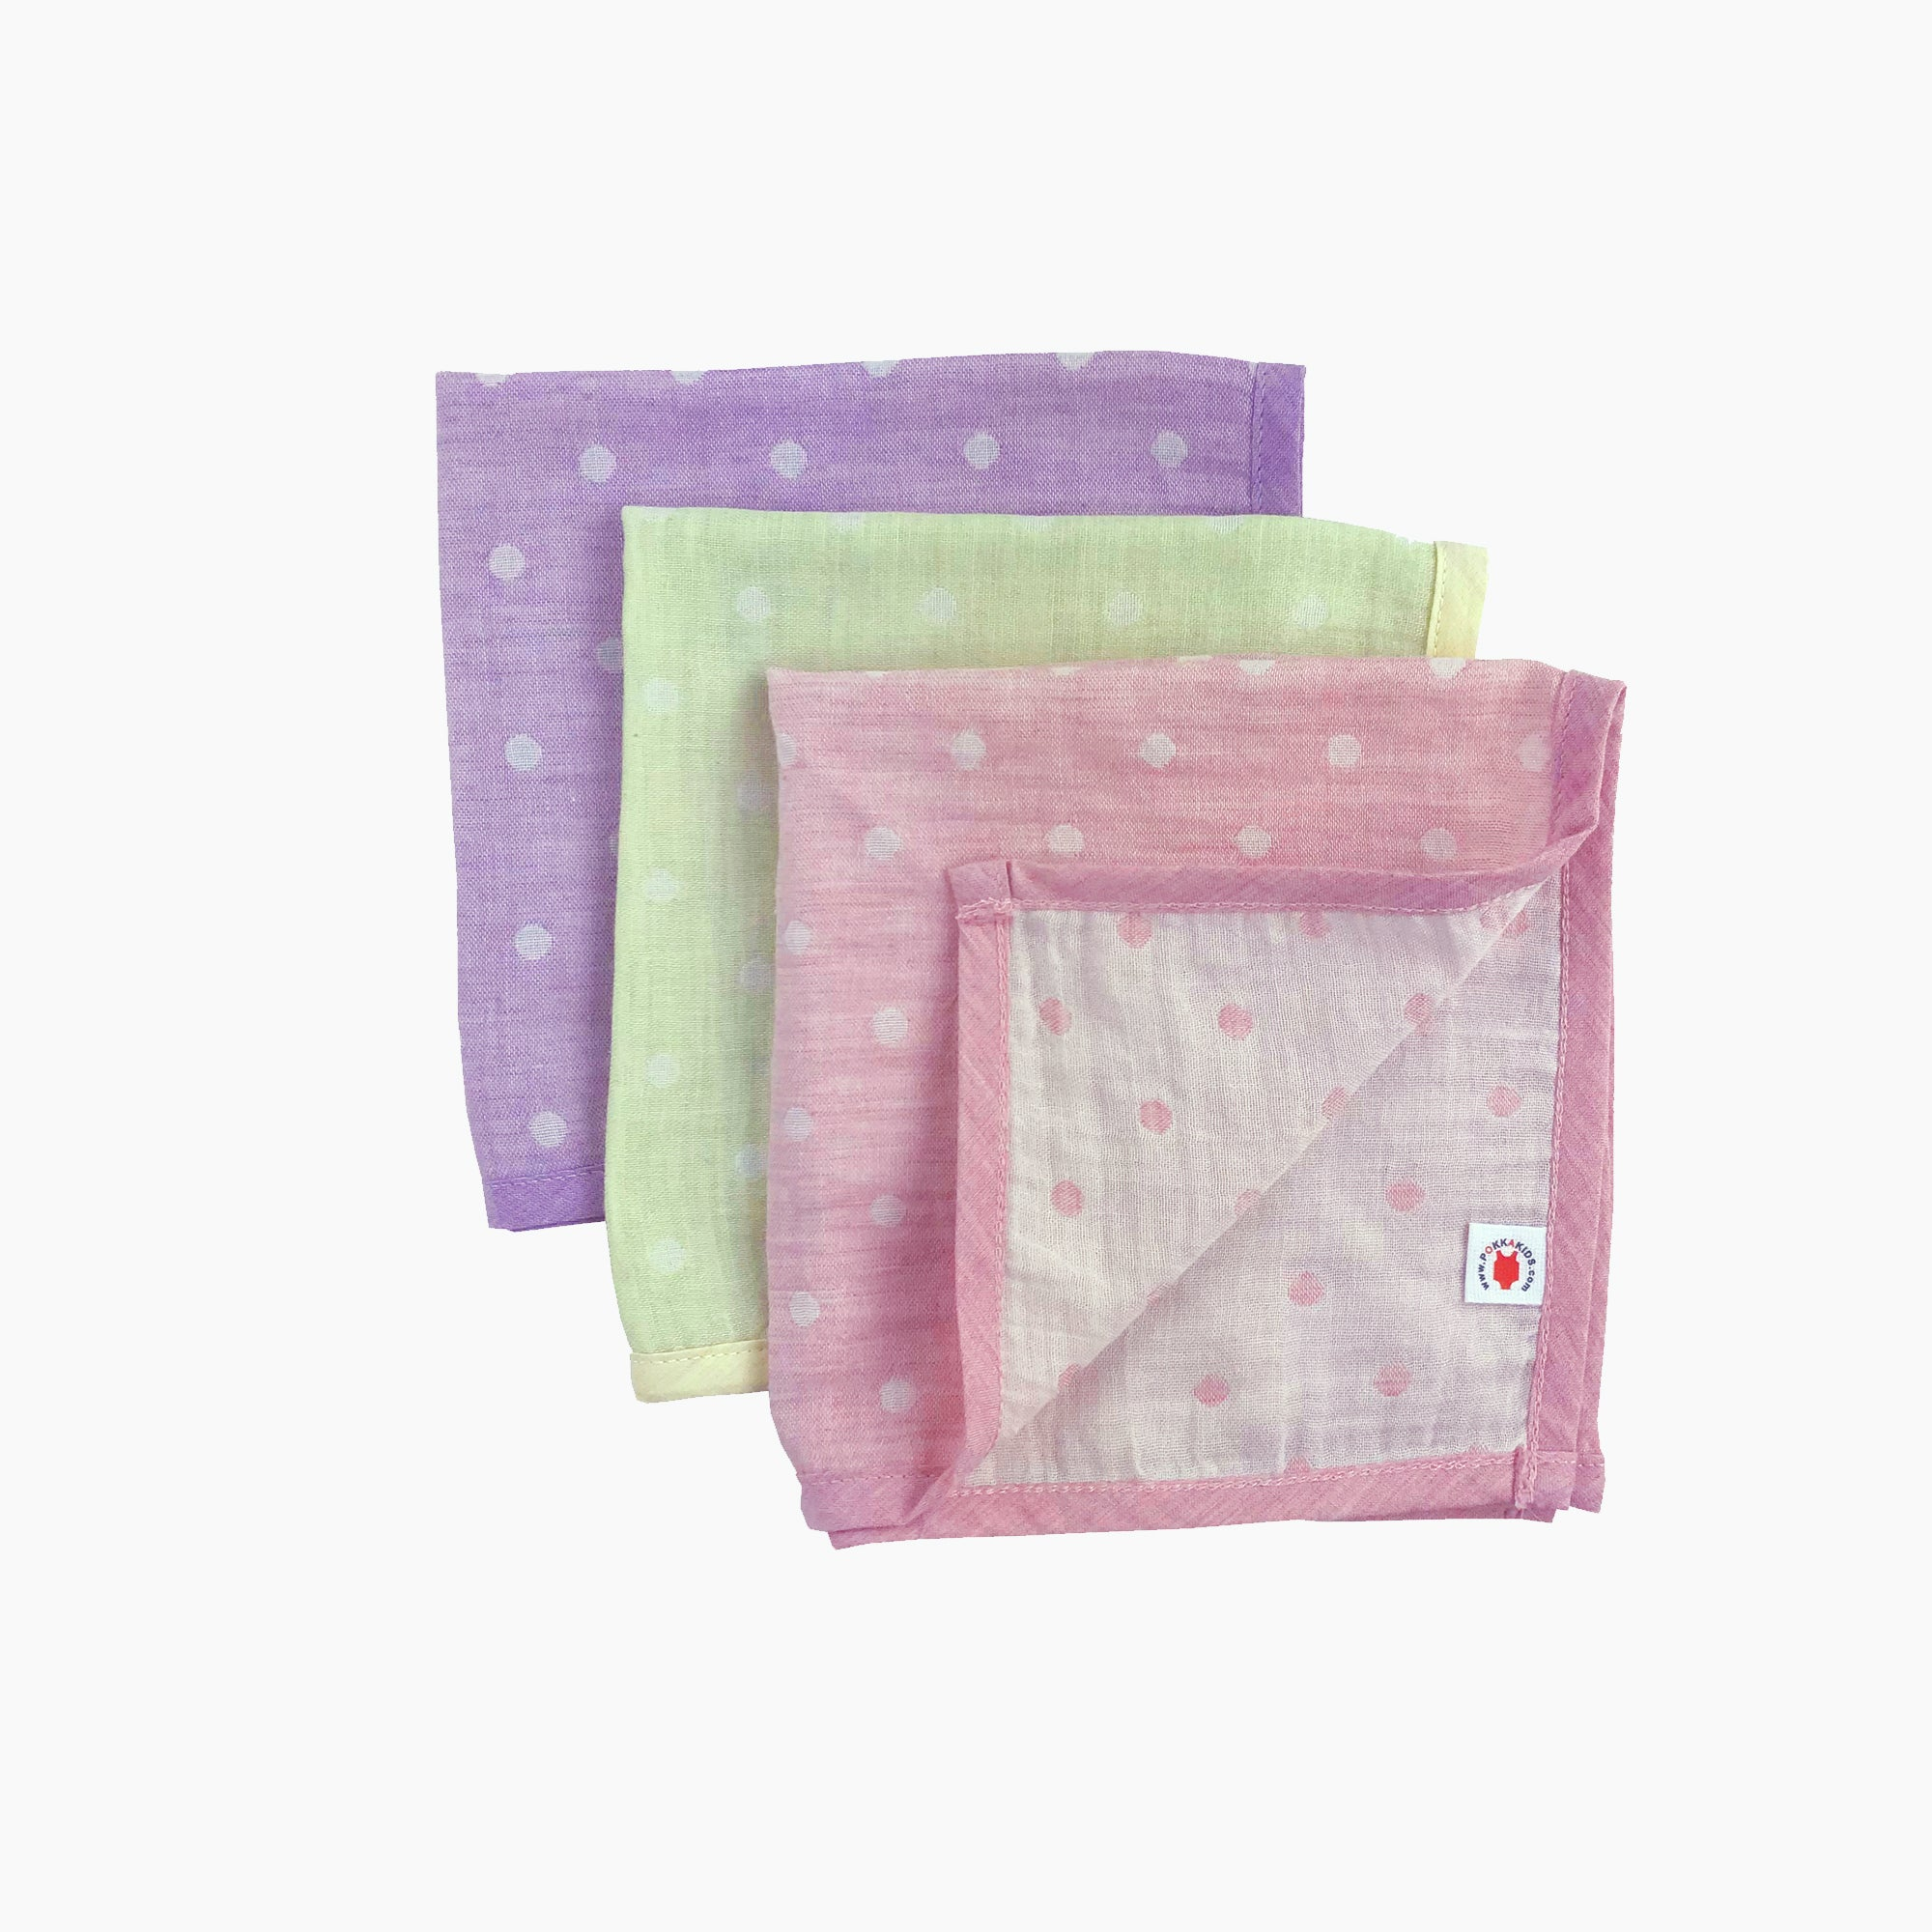 Pokka Kids 100 % GOTS certified organic cotton baby hanky gift set in pink, lime, purple colors are good for eczema